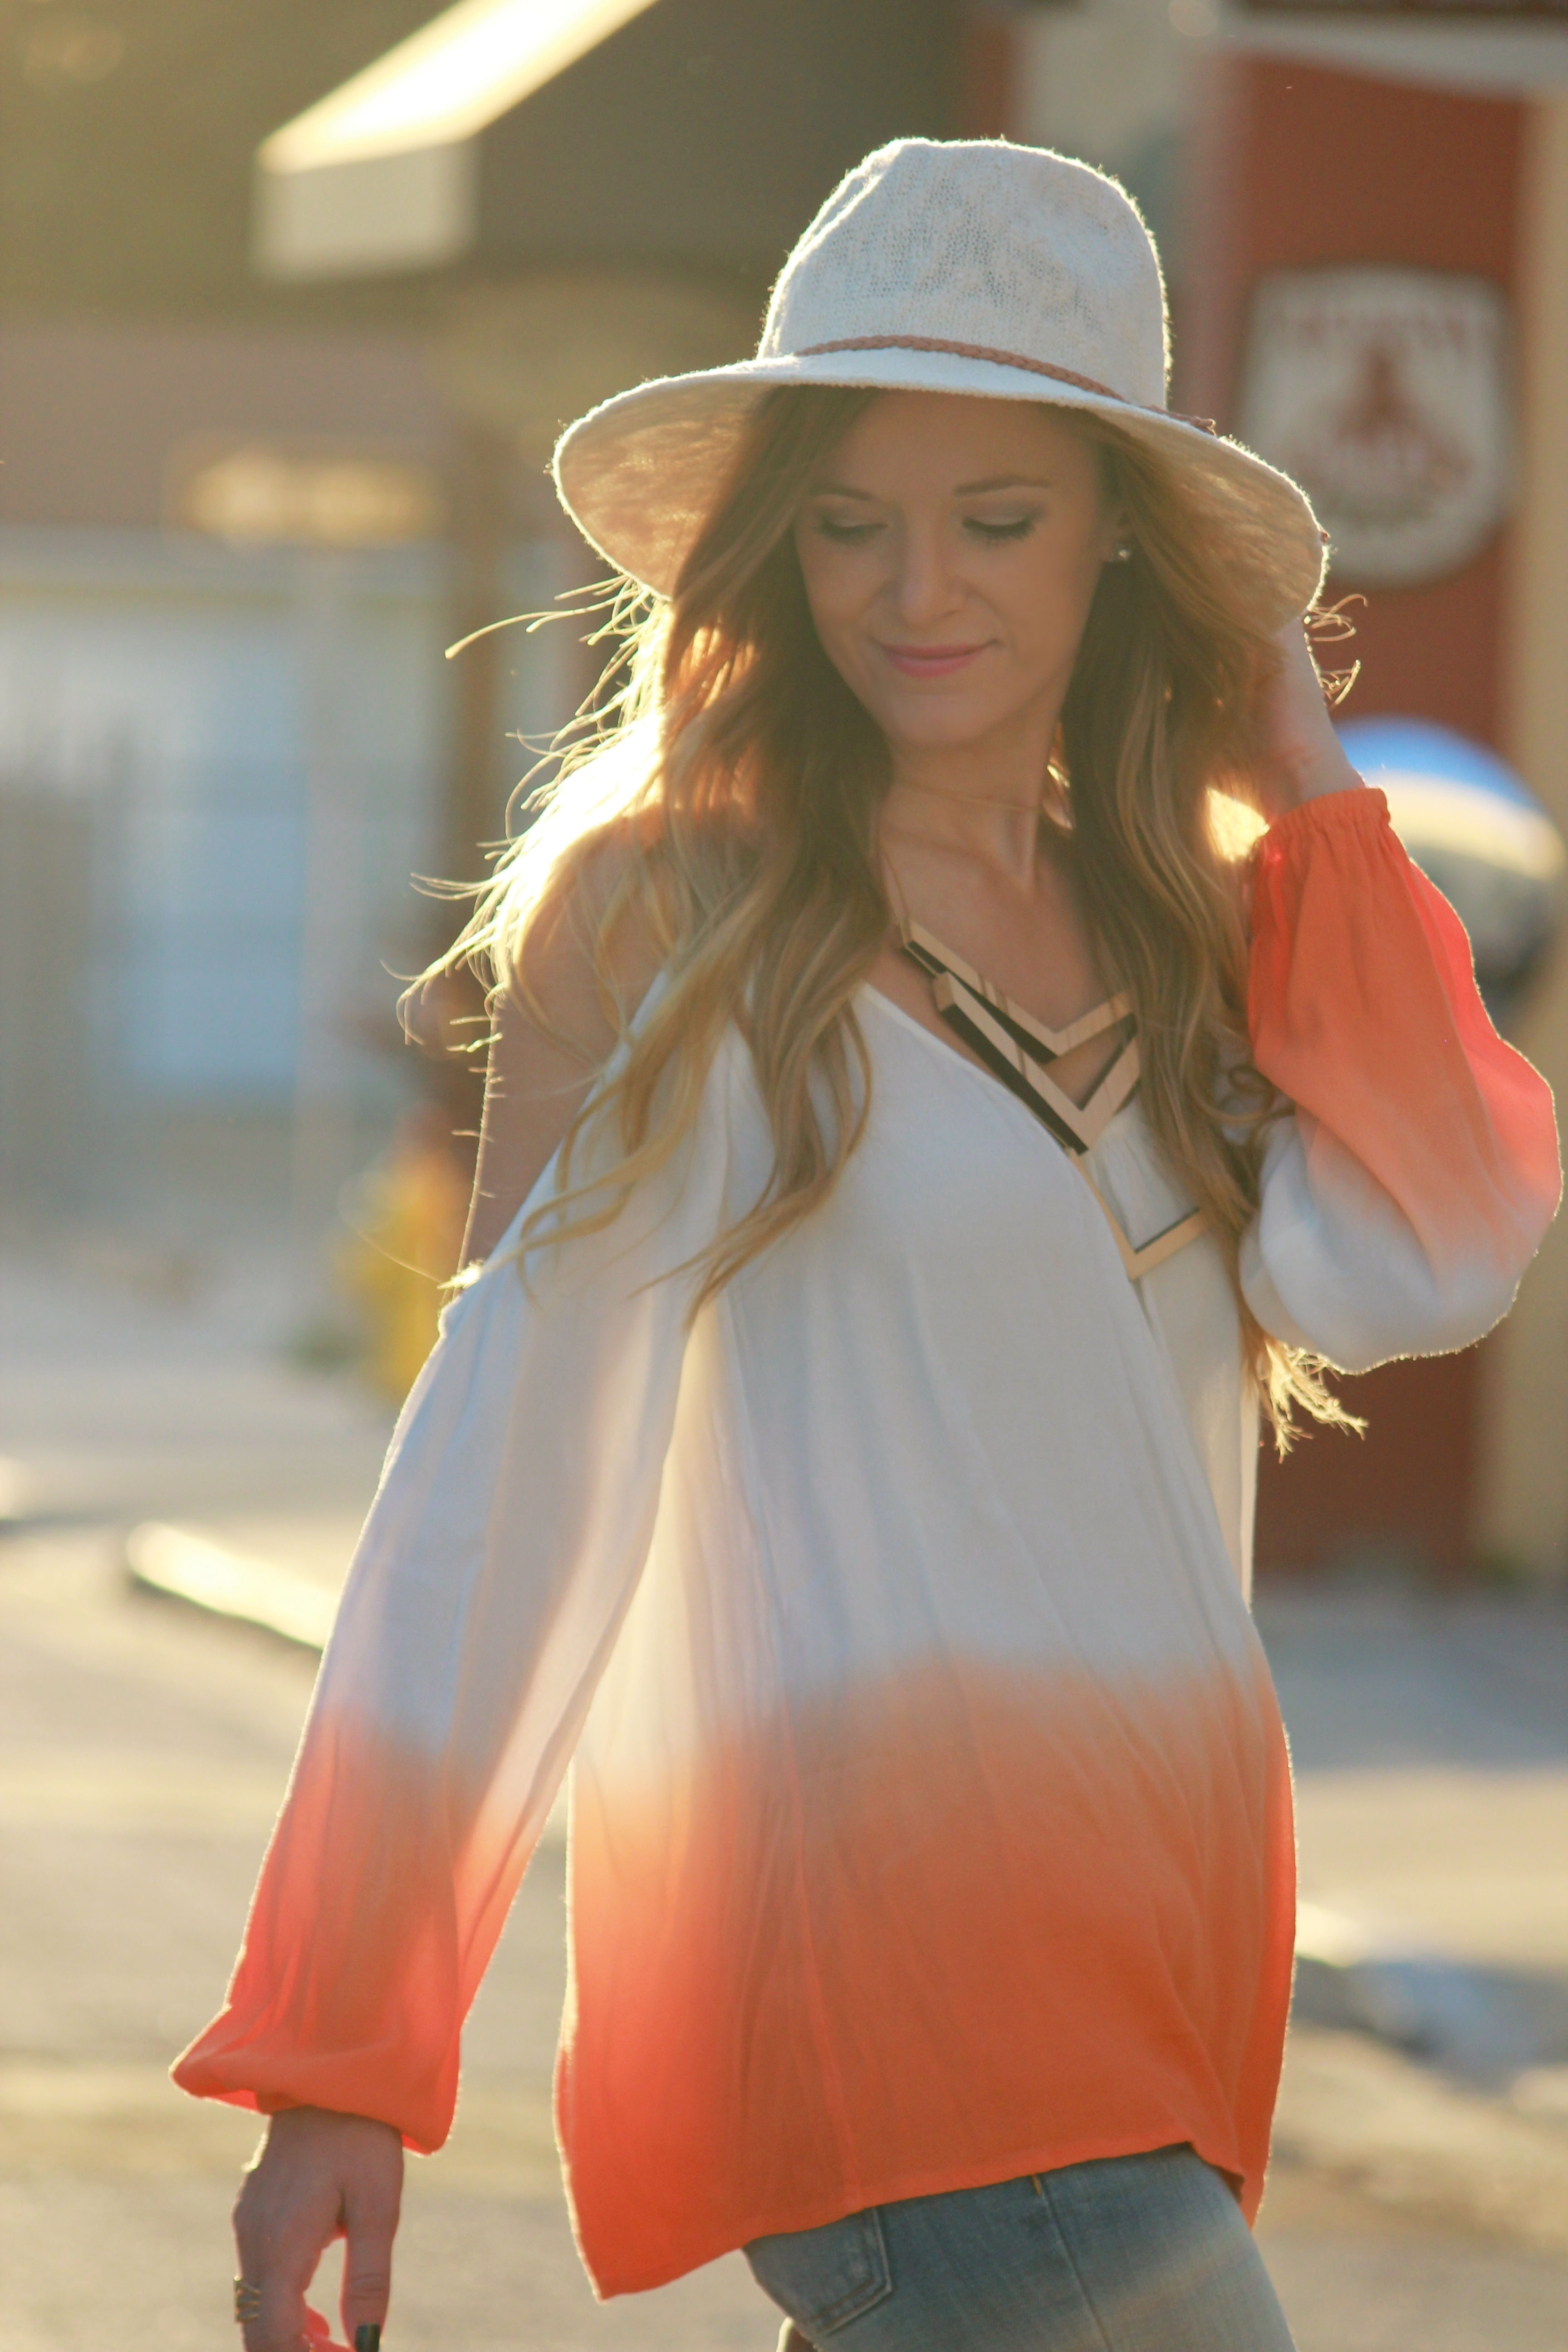 opened shoulder top, off the shoulder top, orange dipped top, pacsun hat, Kendall and kylie collection, bound necklaces, american eagle jeans, flared jeans, boho outfit, boho chic outfit, fall transition outfit, casual fall outfit